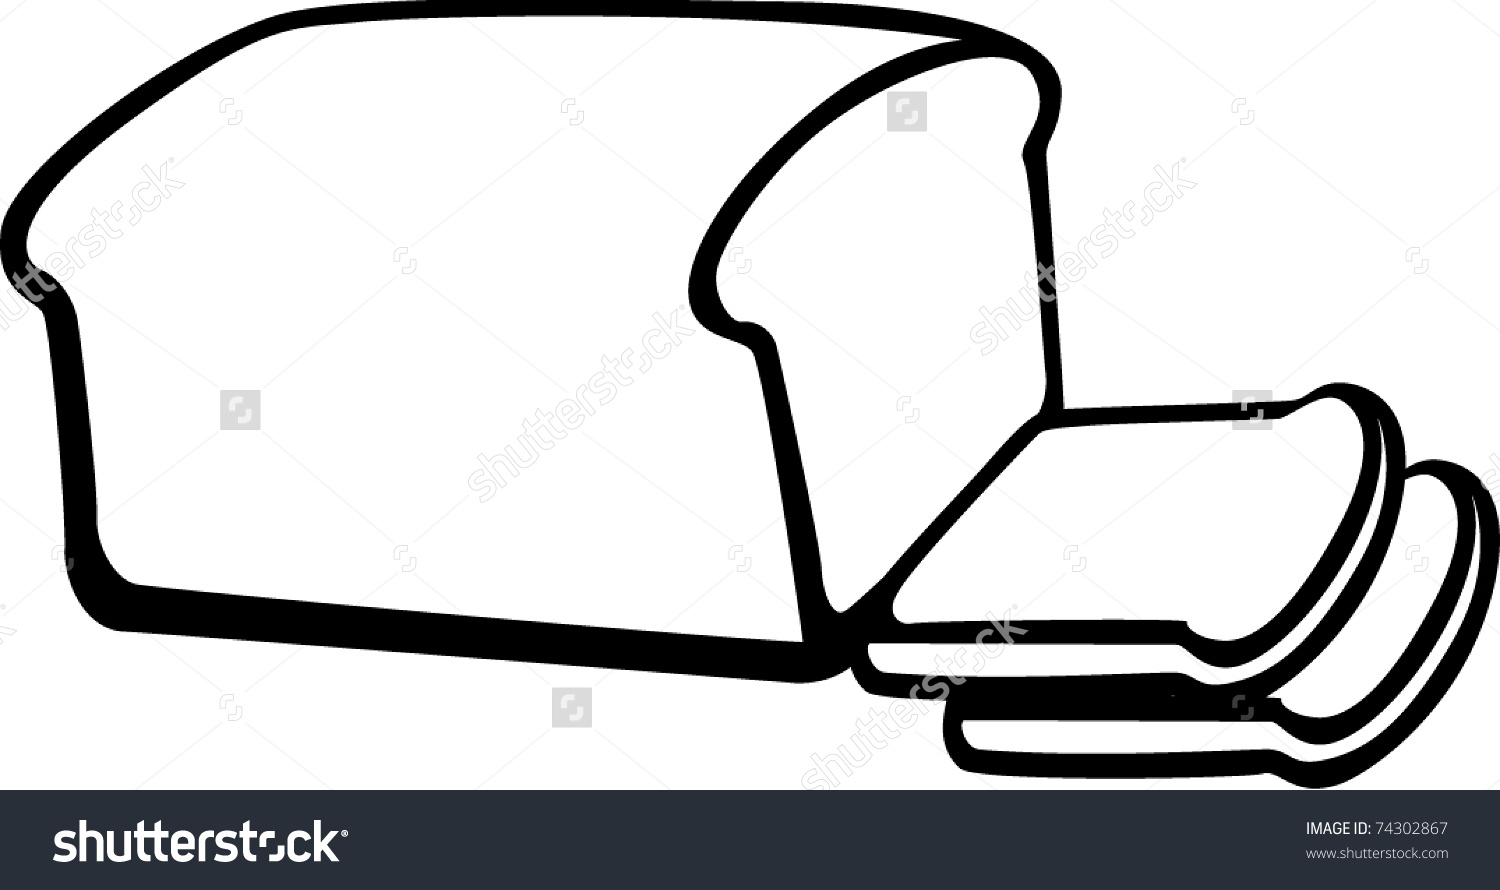 Clipart loaf of bread.